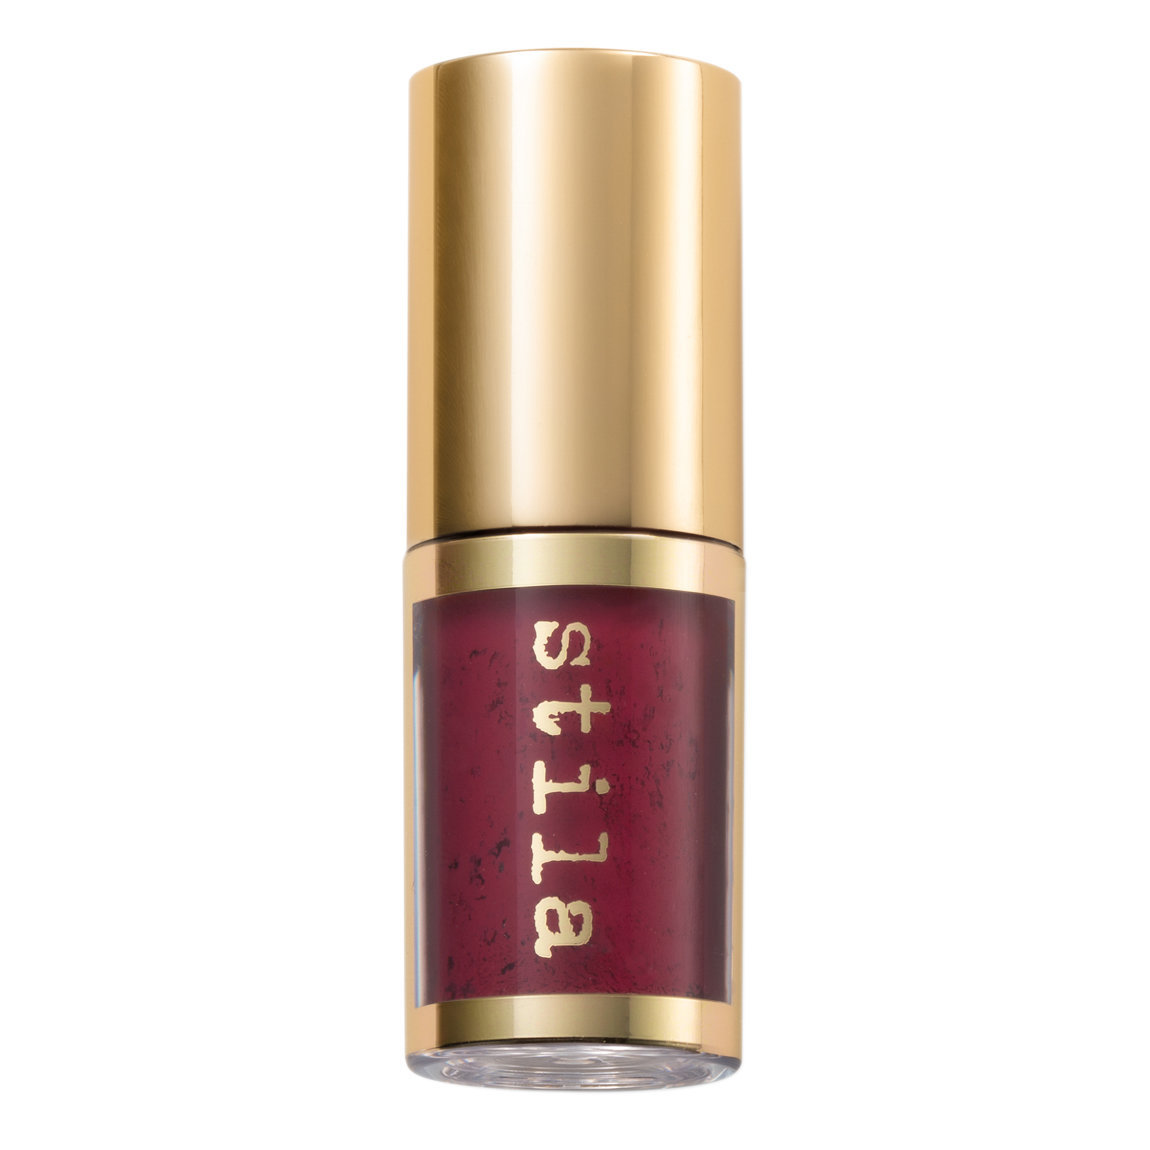 Stila Shine Fever Lip Vinyl Supercharge alternative view 1.